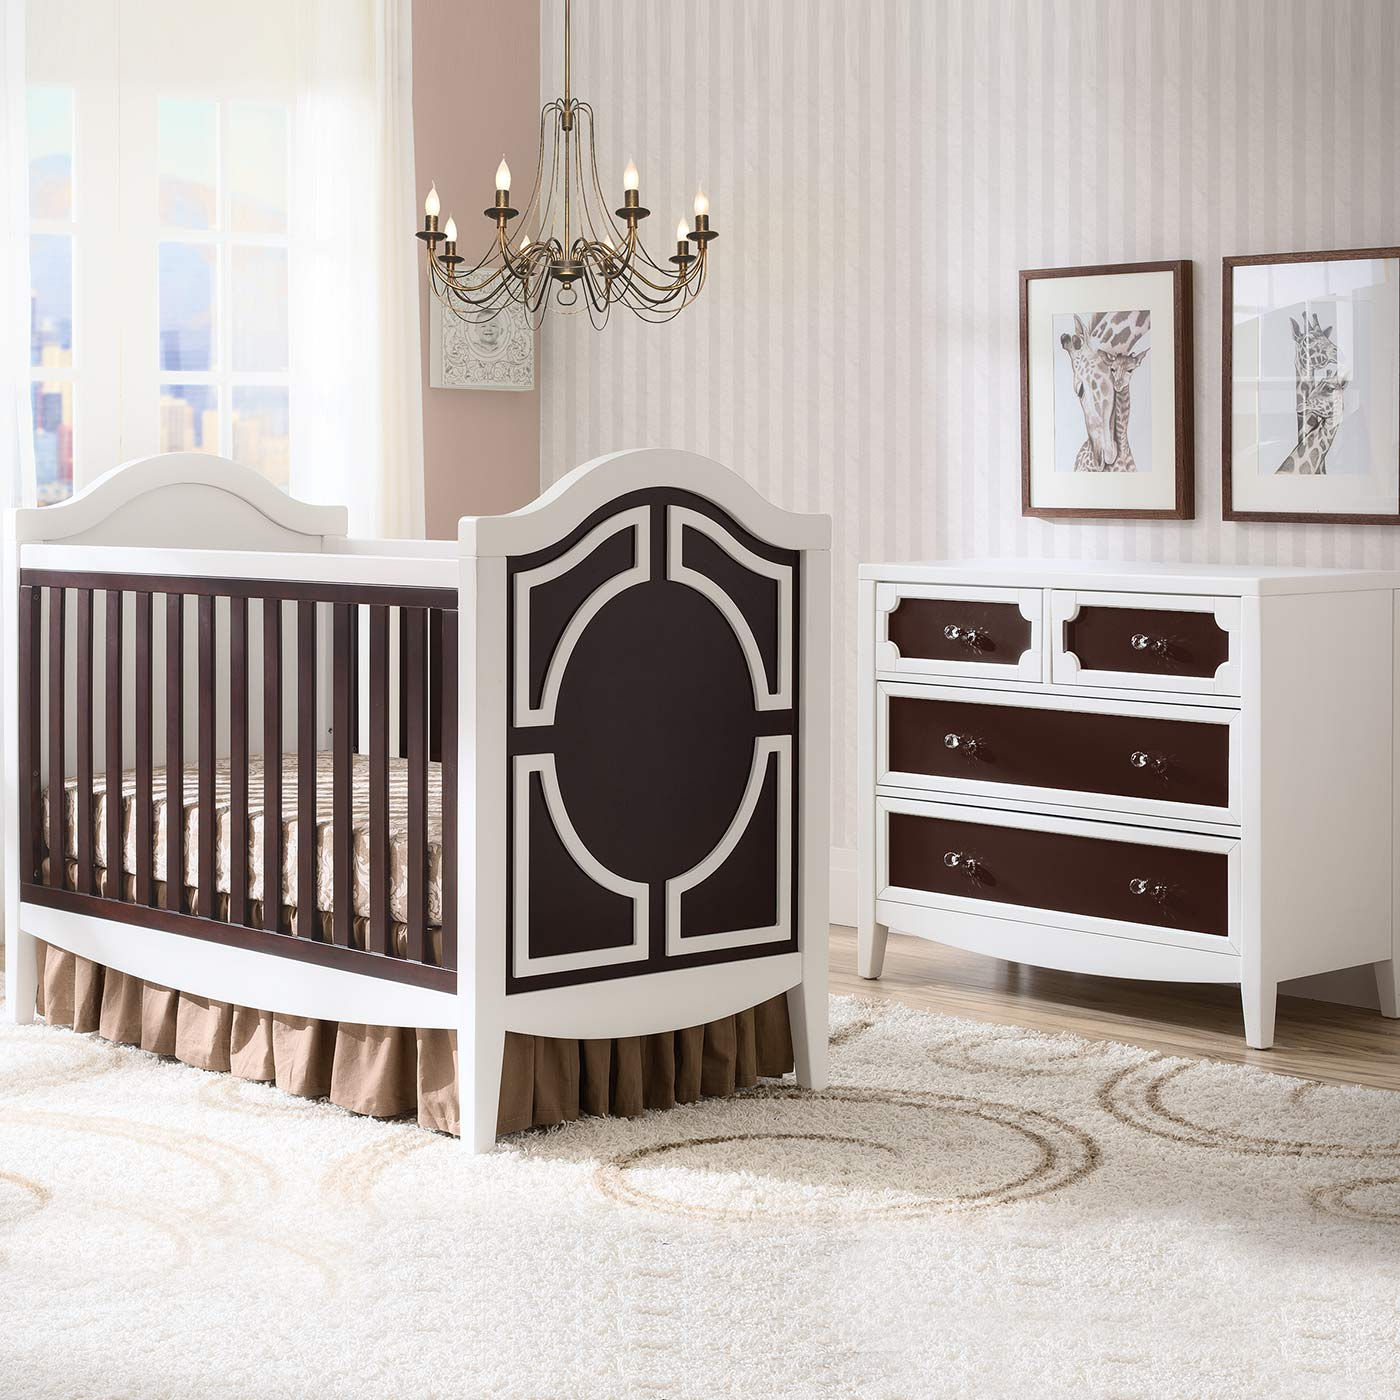 Simmons Hollywood 2 Piece Nursery Set Convertible Crib And 4 Drawer Dresser In White Dark Chocolate Free Shipping